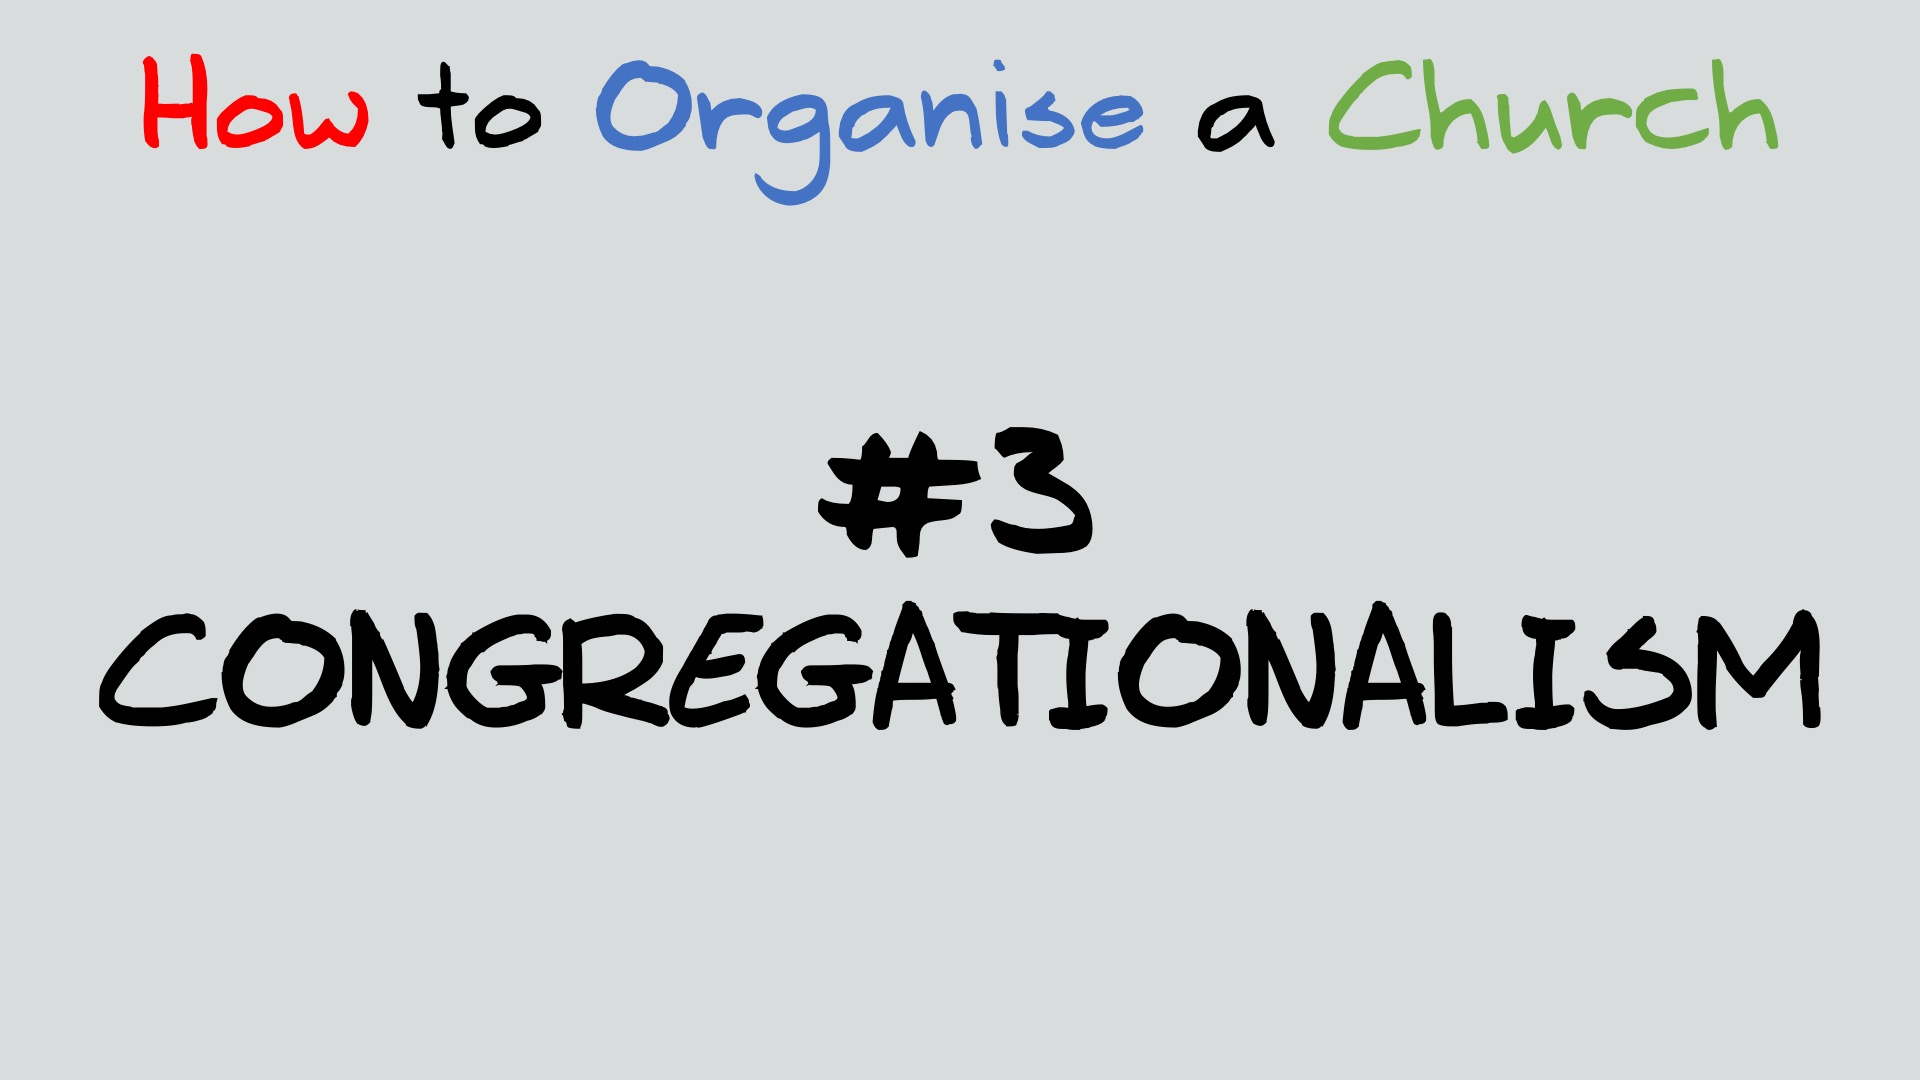 How to organise a church – Congregationalism